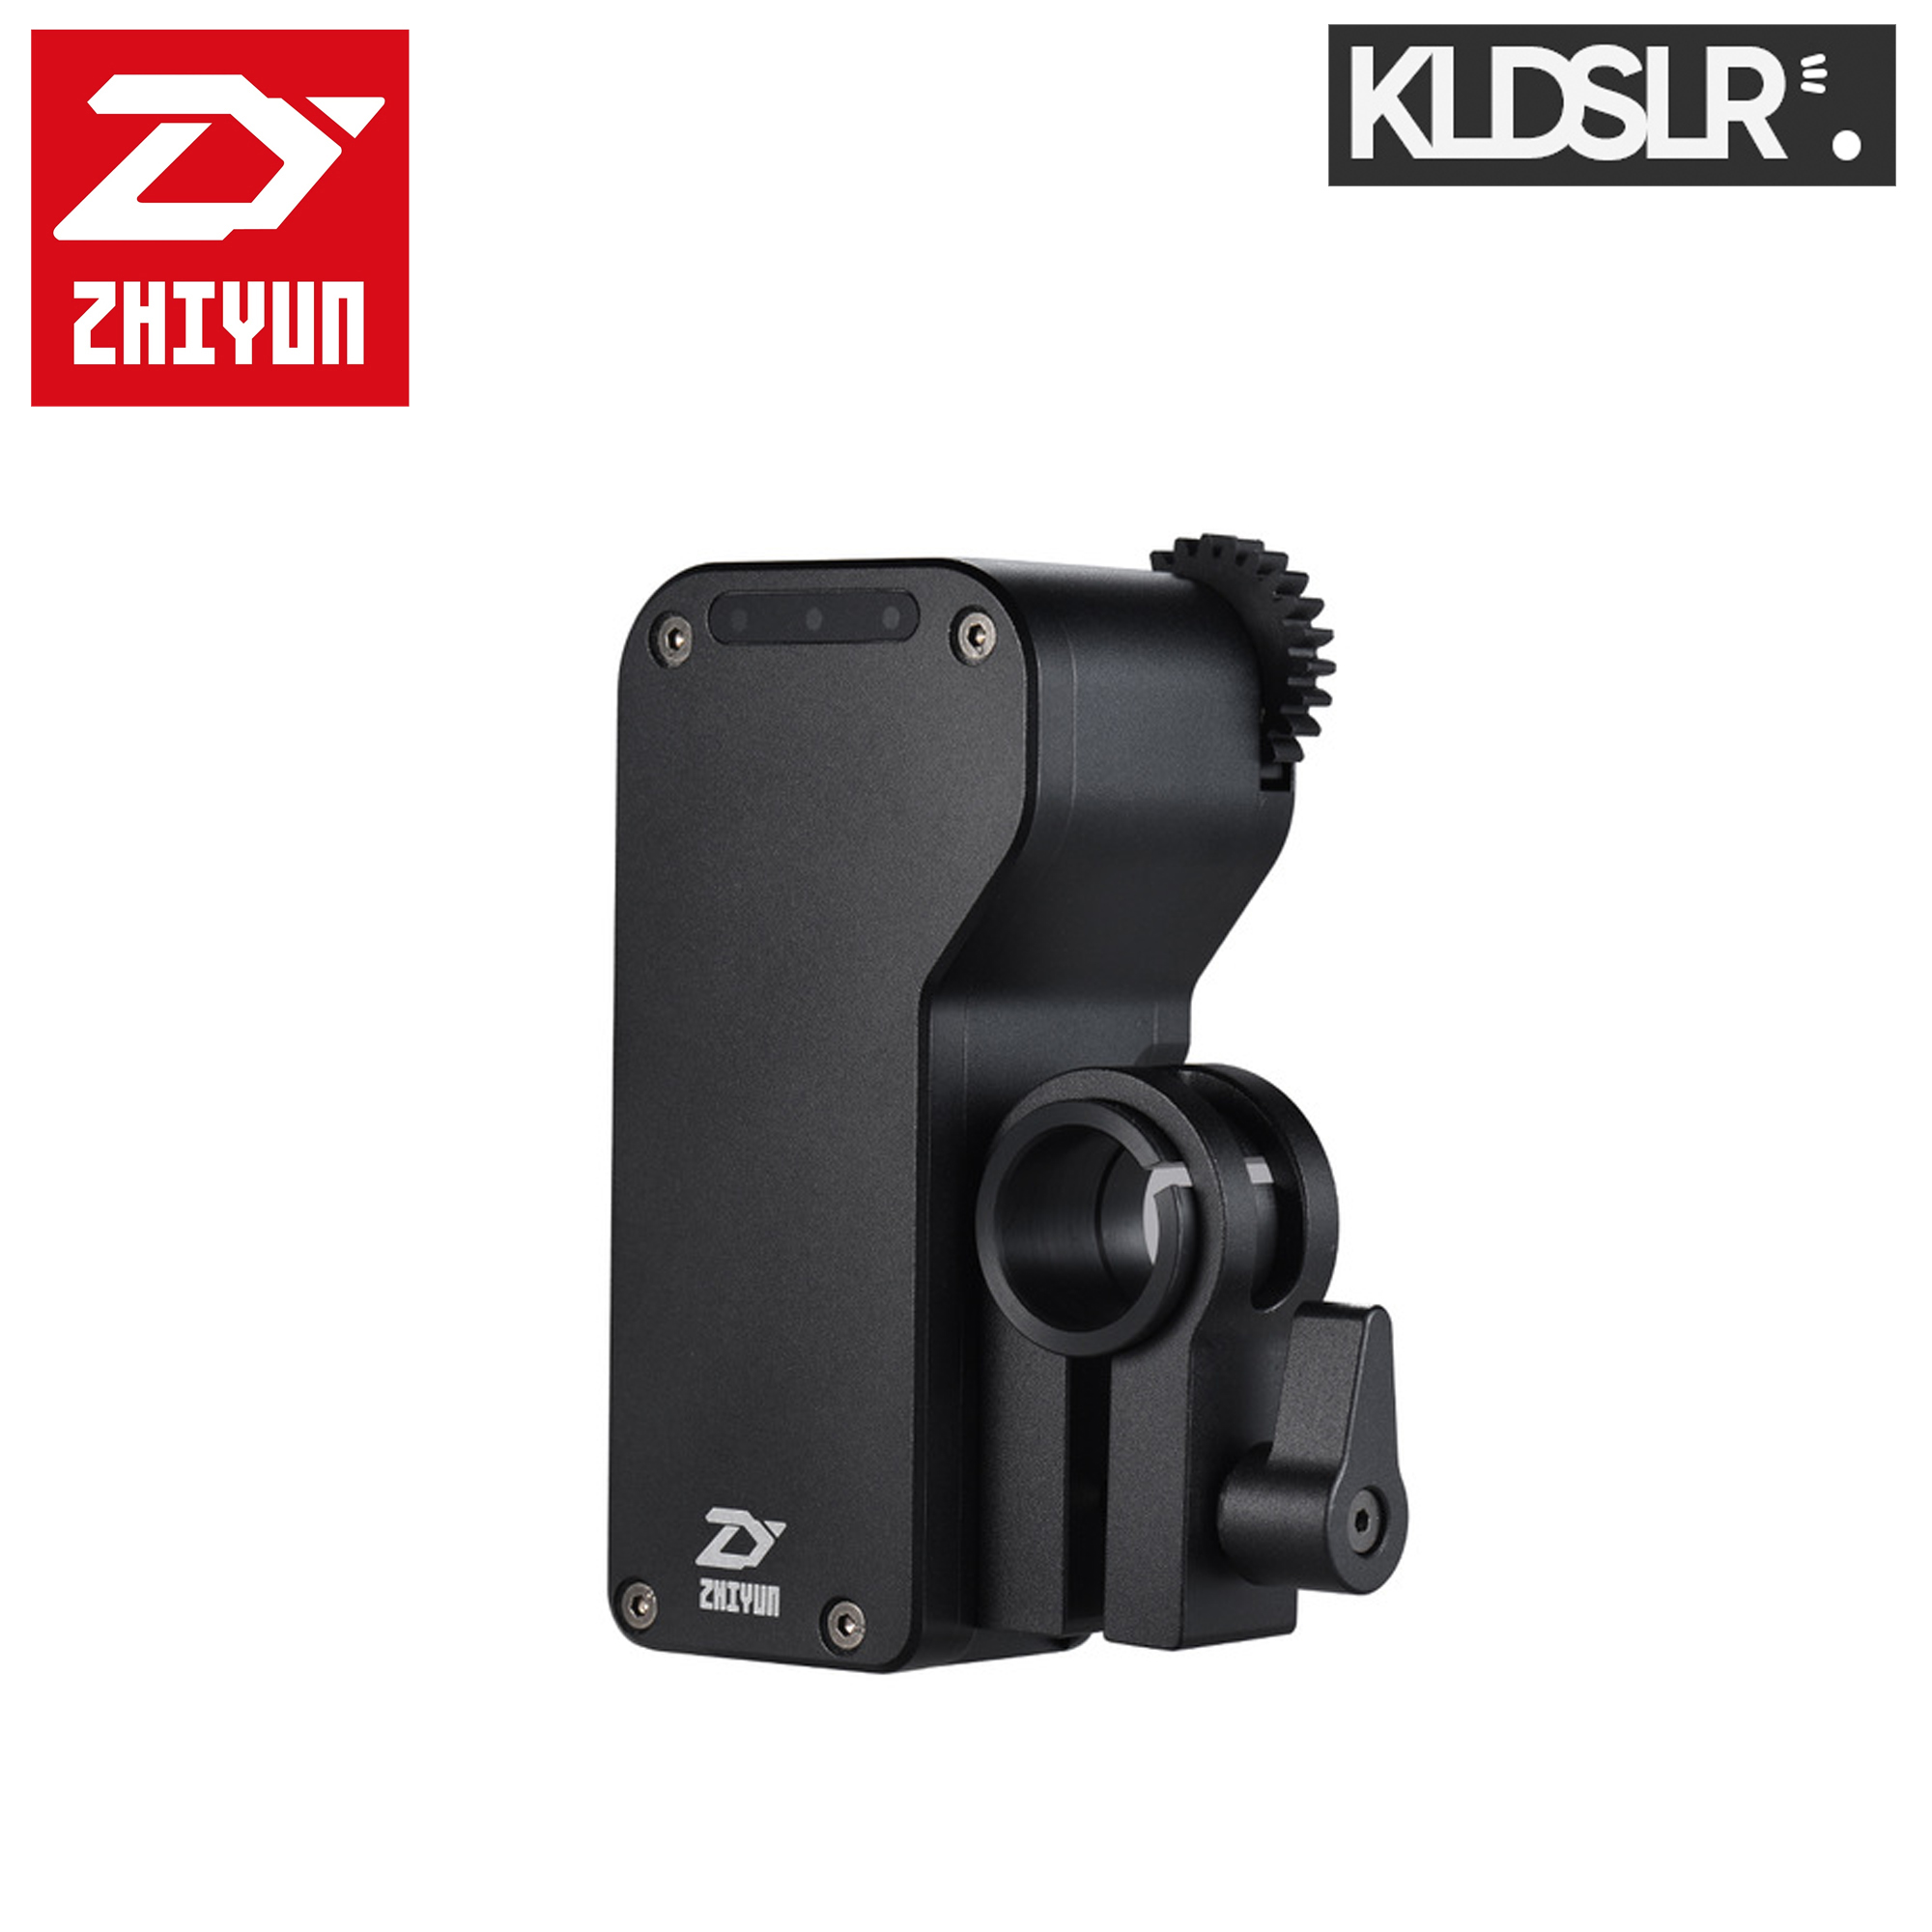 Zhiyun CMF-01 Crane 2 Servo Follow Focus (Mechanical) Seamless Connection Simultaneous Control Wireless